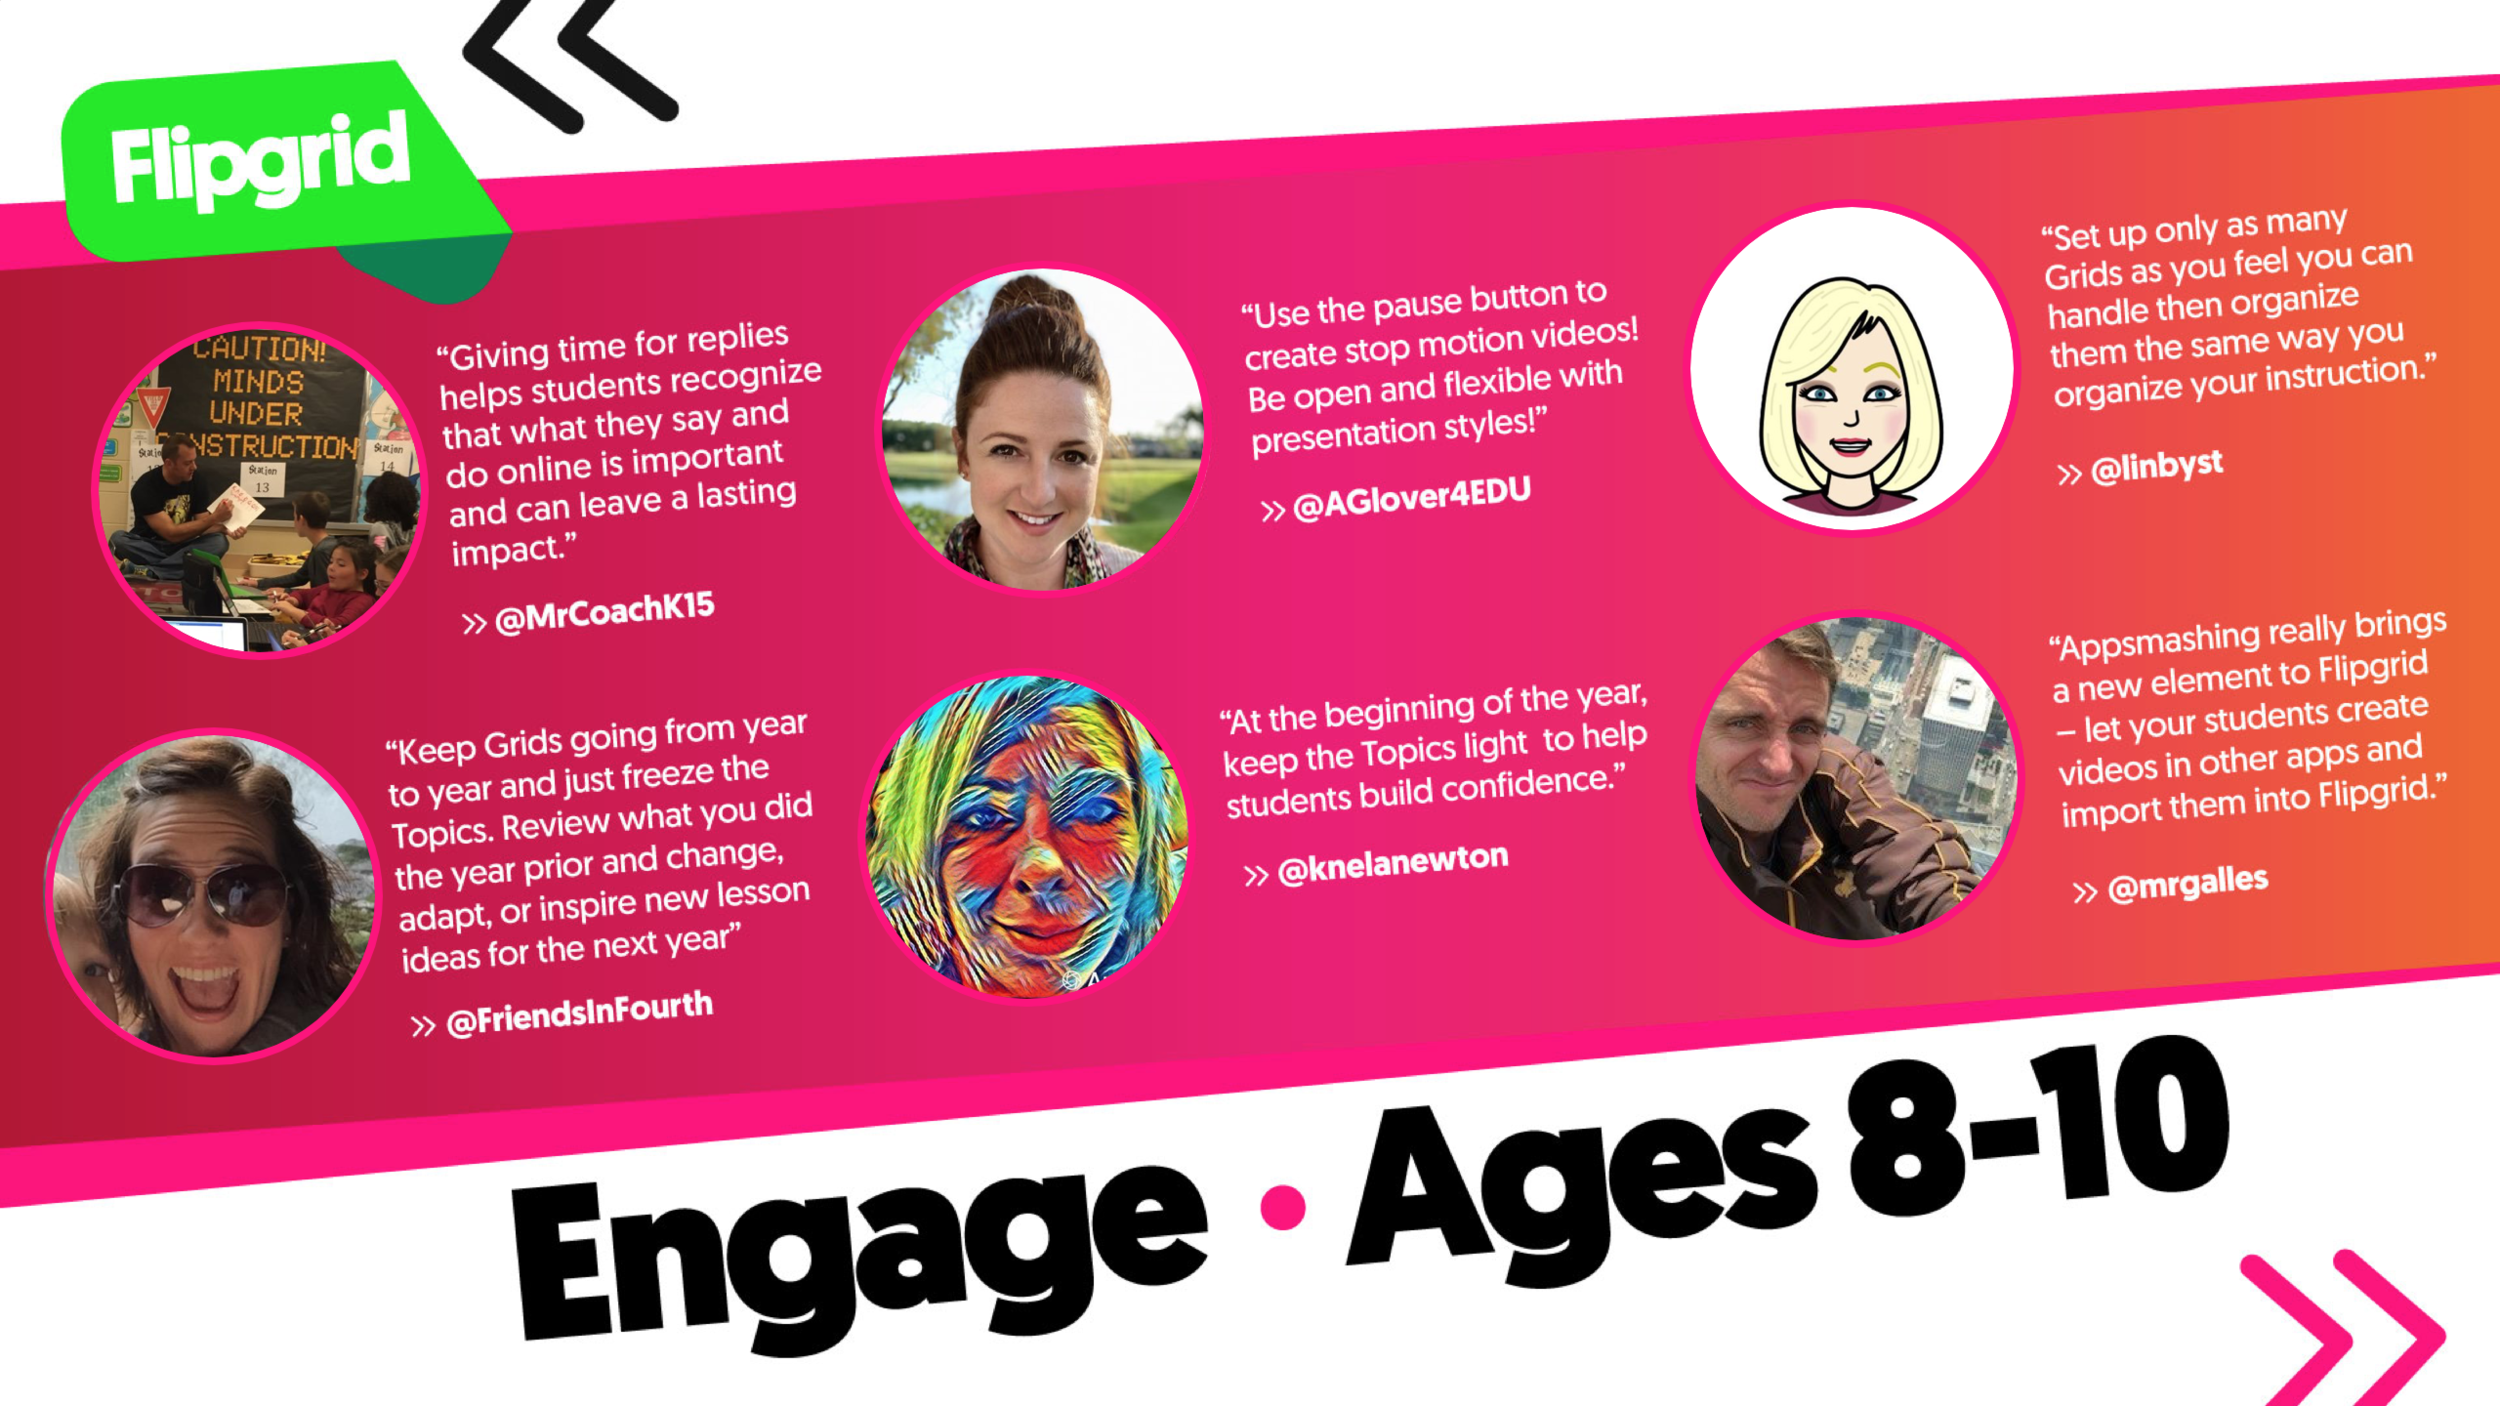 Engage Ages 8-10